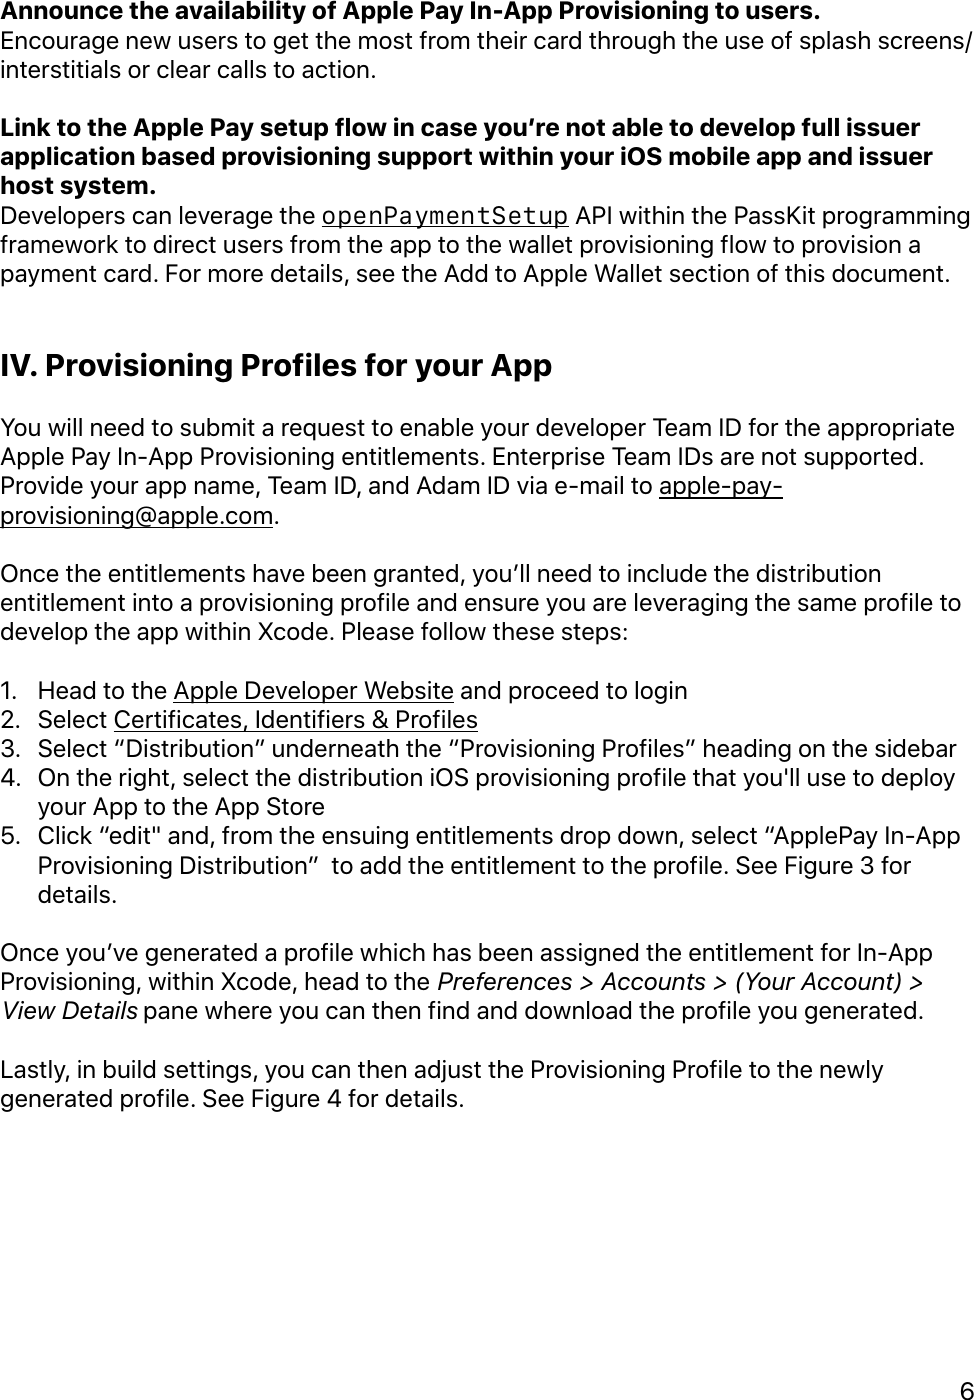 In App Provisioning Getting Started Guide V1 23